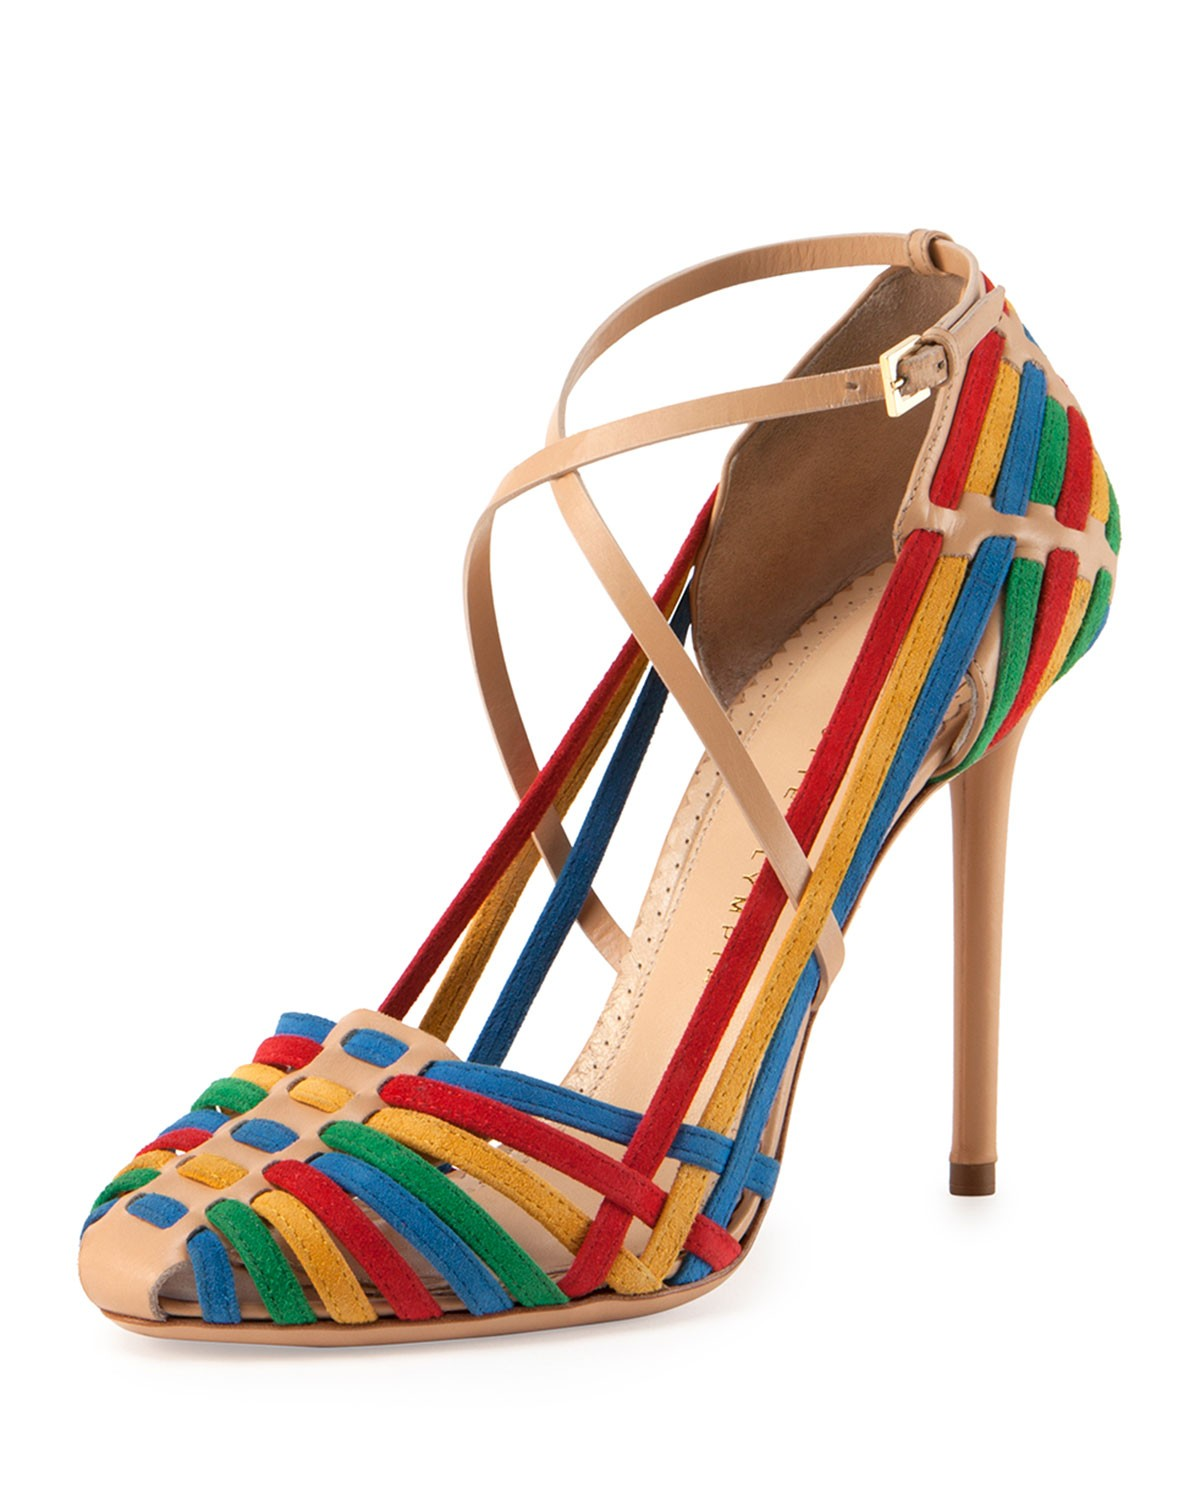 Mariachi Woven Suede Crisscross Pump - Charlotte Olympia - Multi colors (35.0B/5.0B)